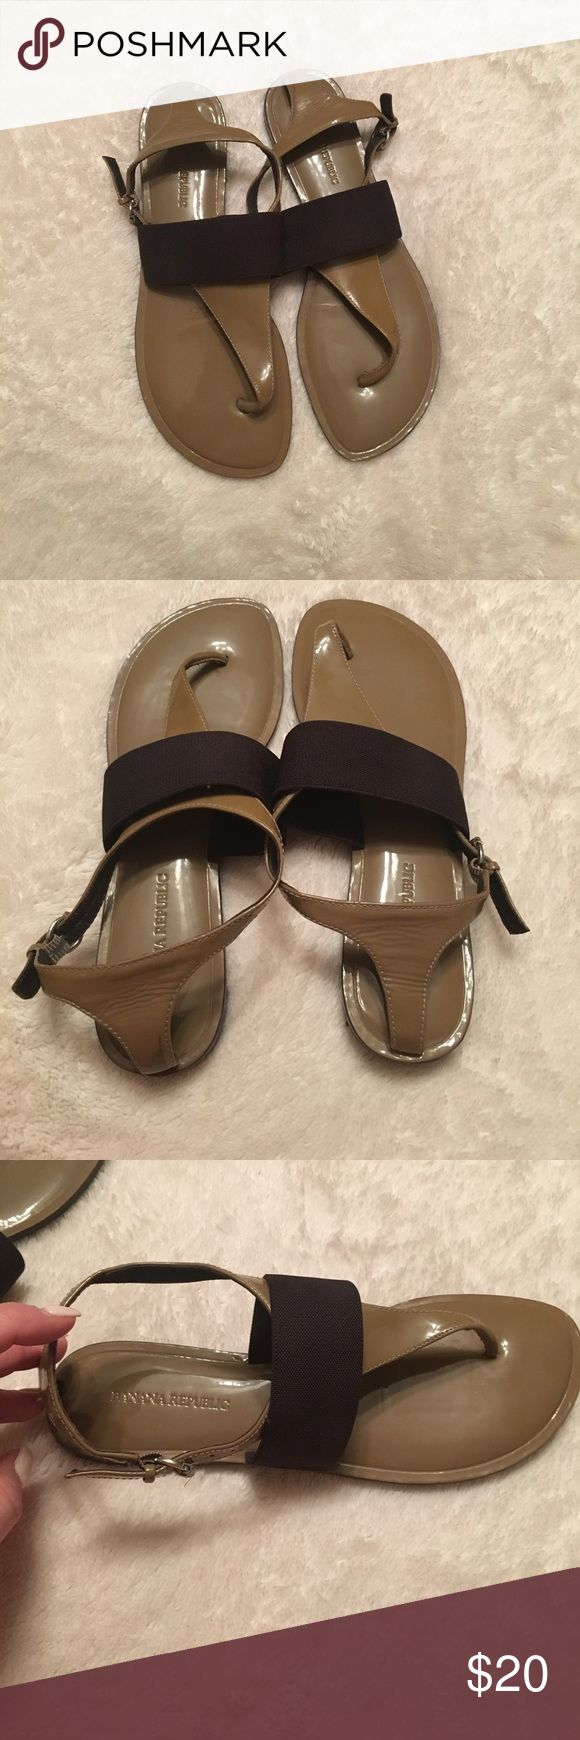 Banana Republic brown sandals Banana Republic Brown Sandals. Buckle on side. Size 7 excellent condition. Banana Republic Shoes Sandals